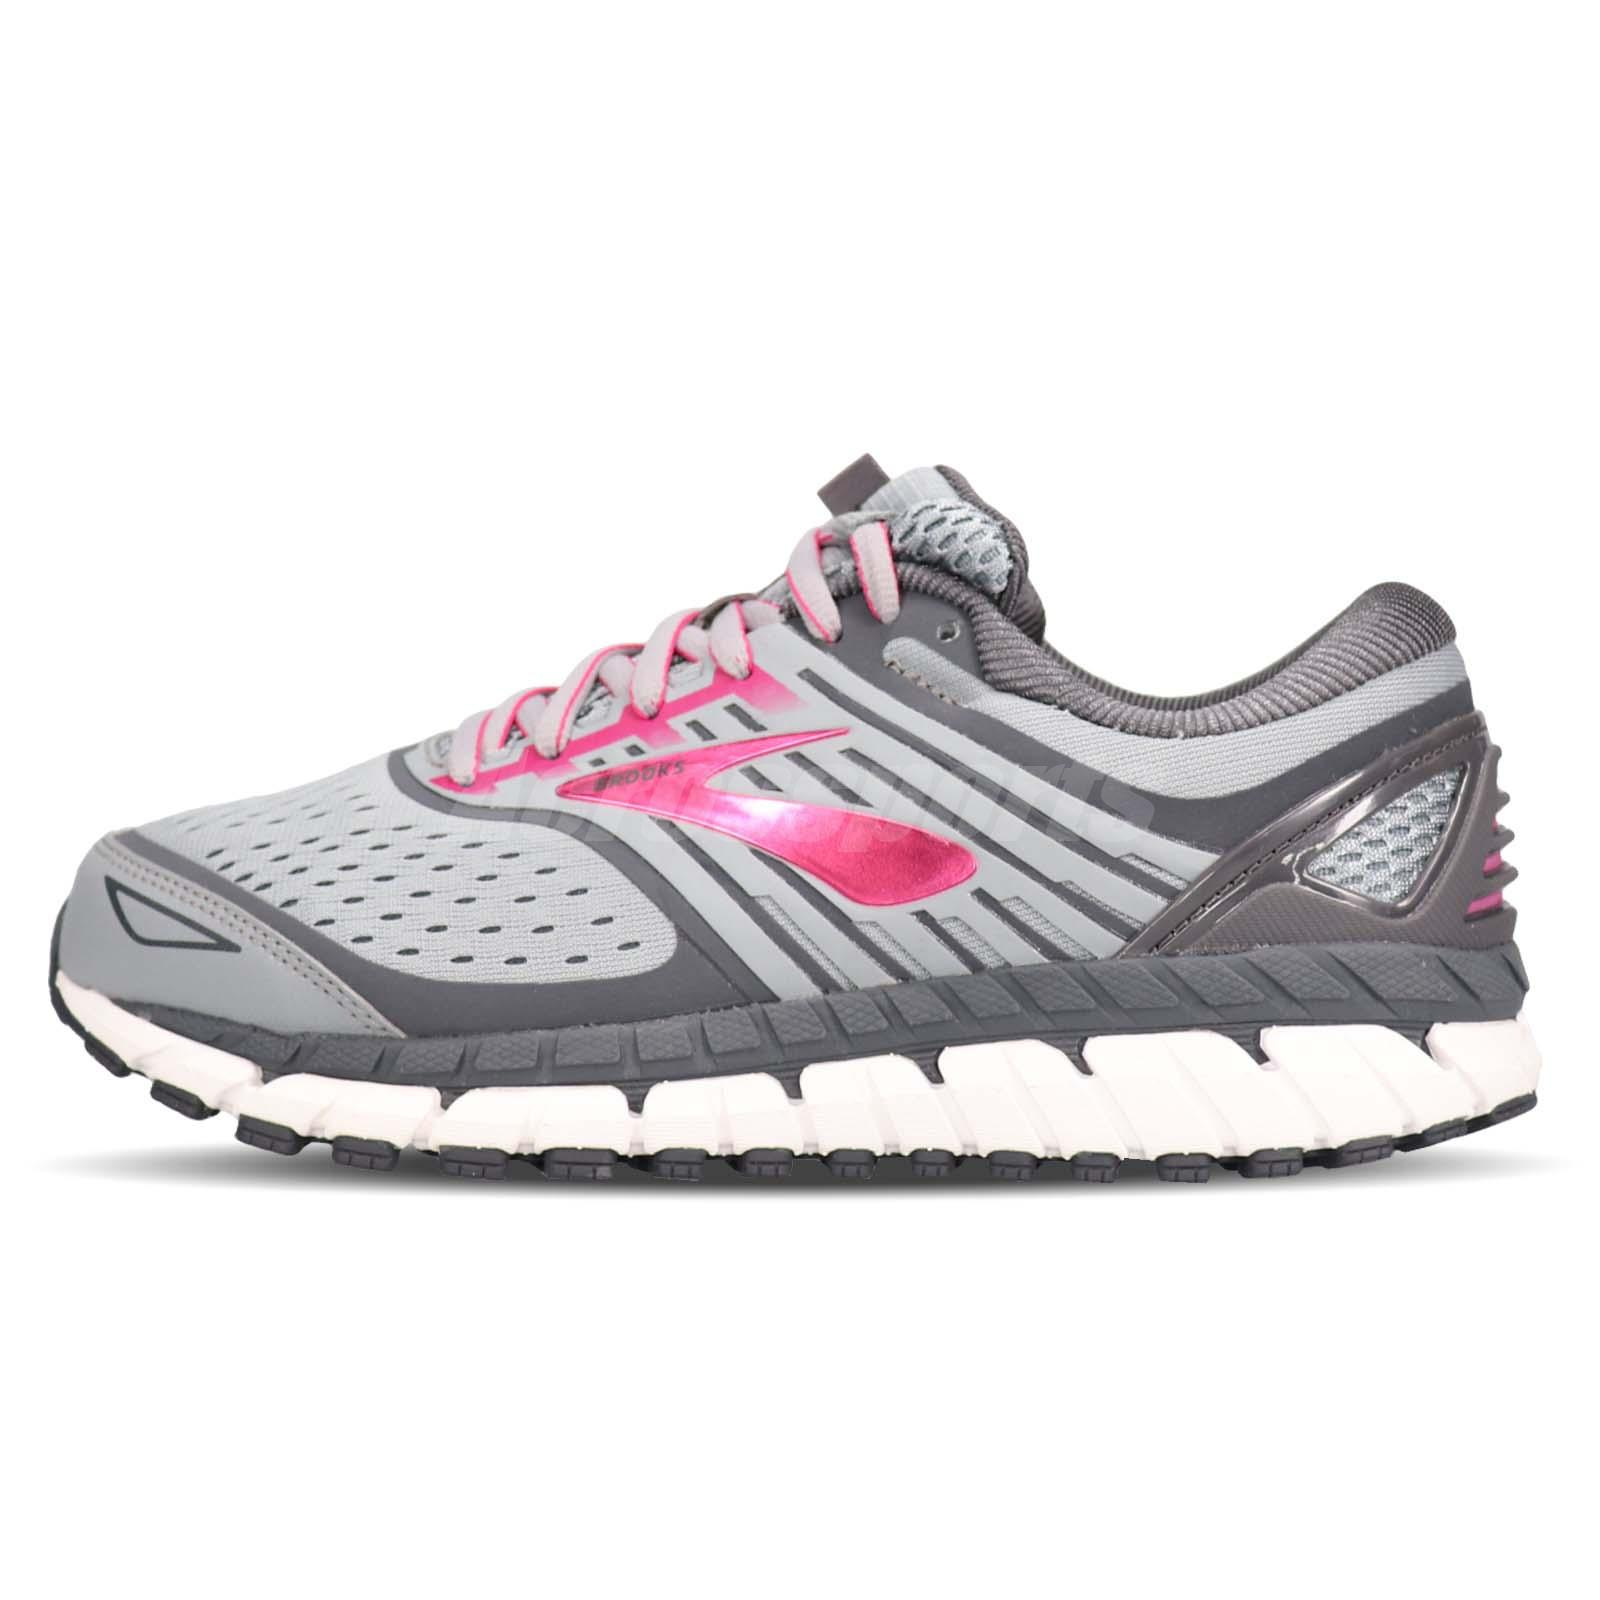 more photos c16c4 49459 Details about Brooks Ariel 18 2E Extra Wide Grey Pink Women Running Shoes  Sneakers 120271 2E